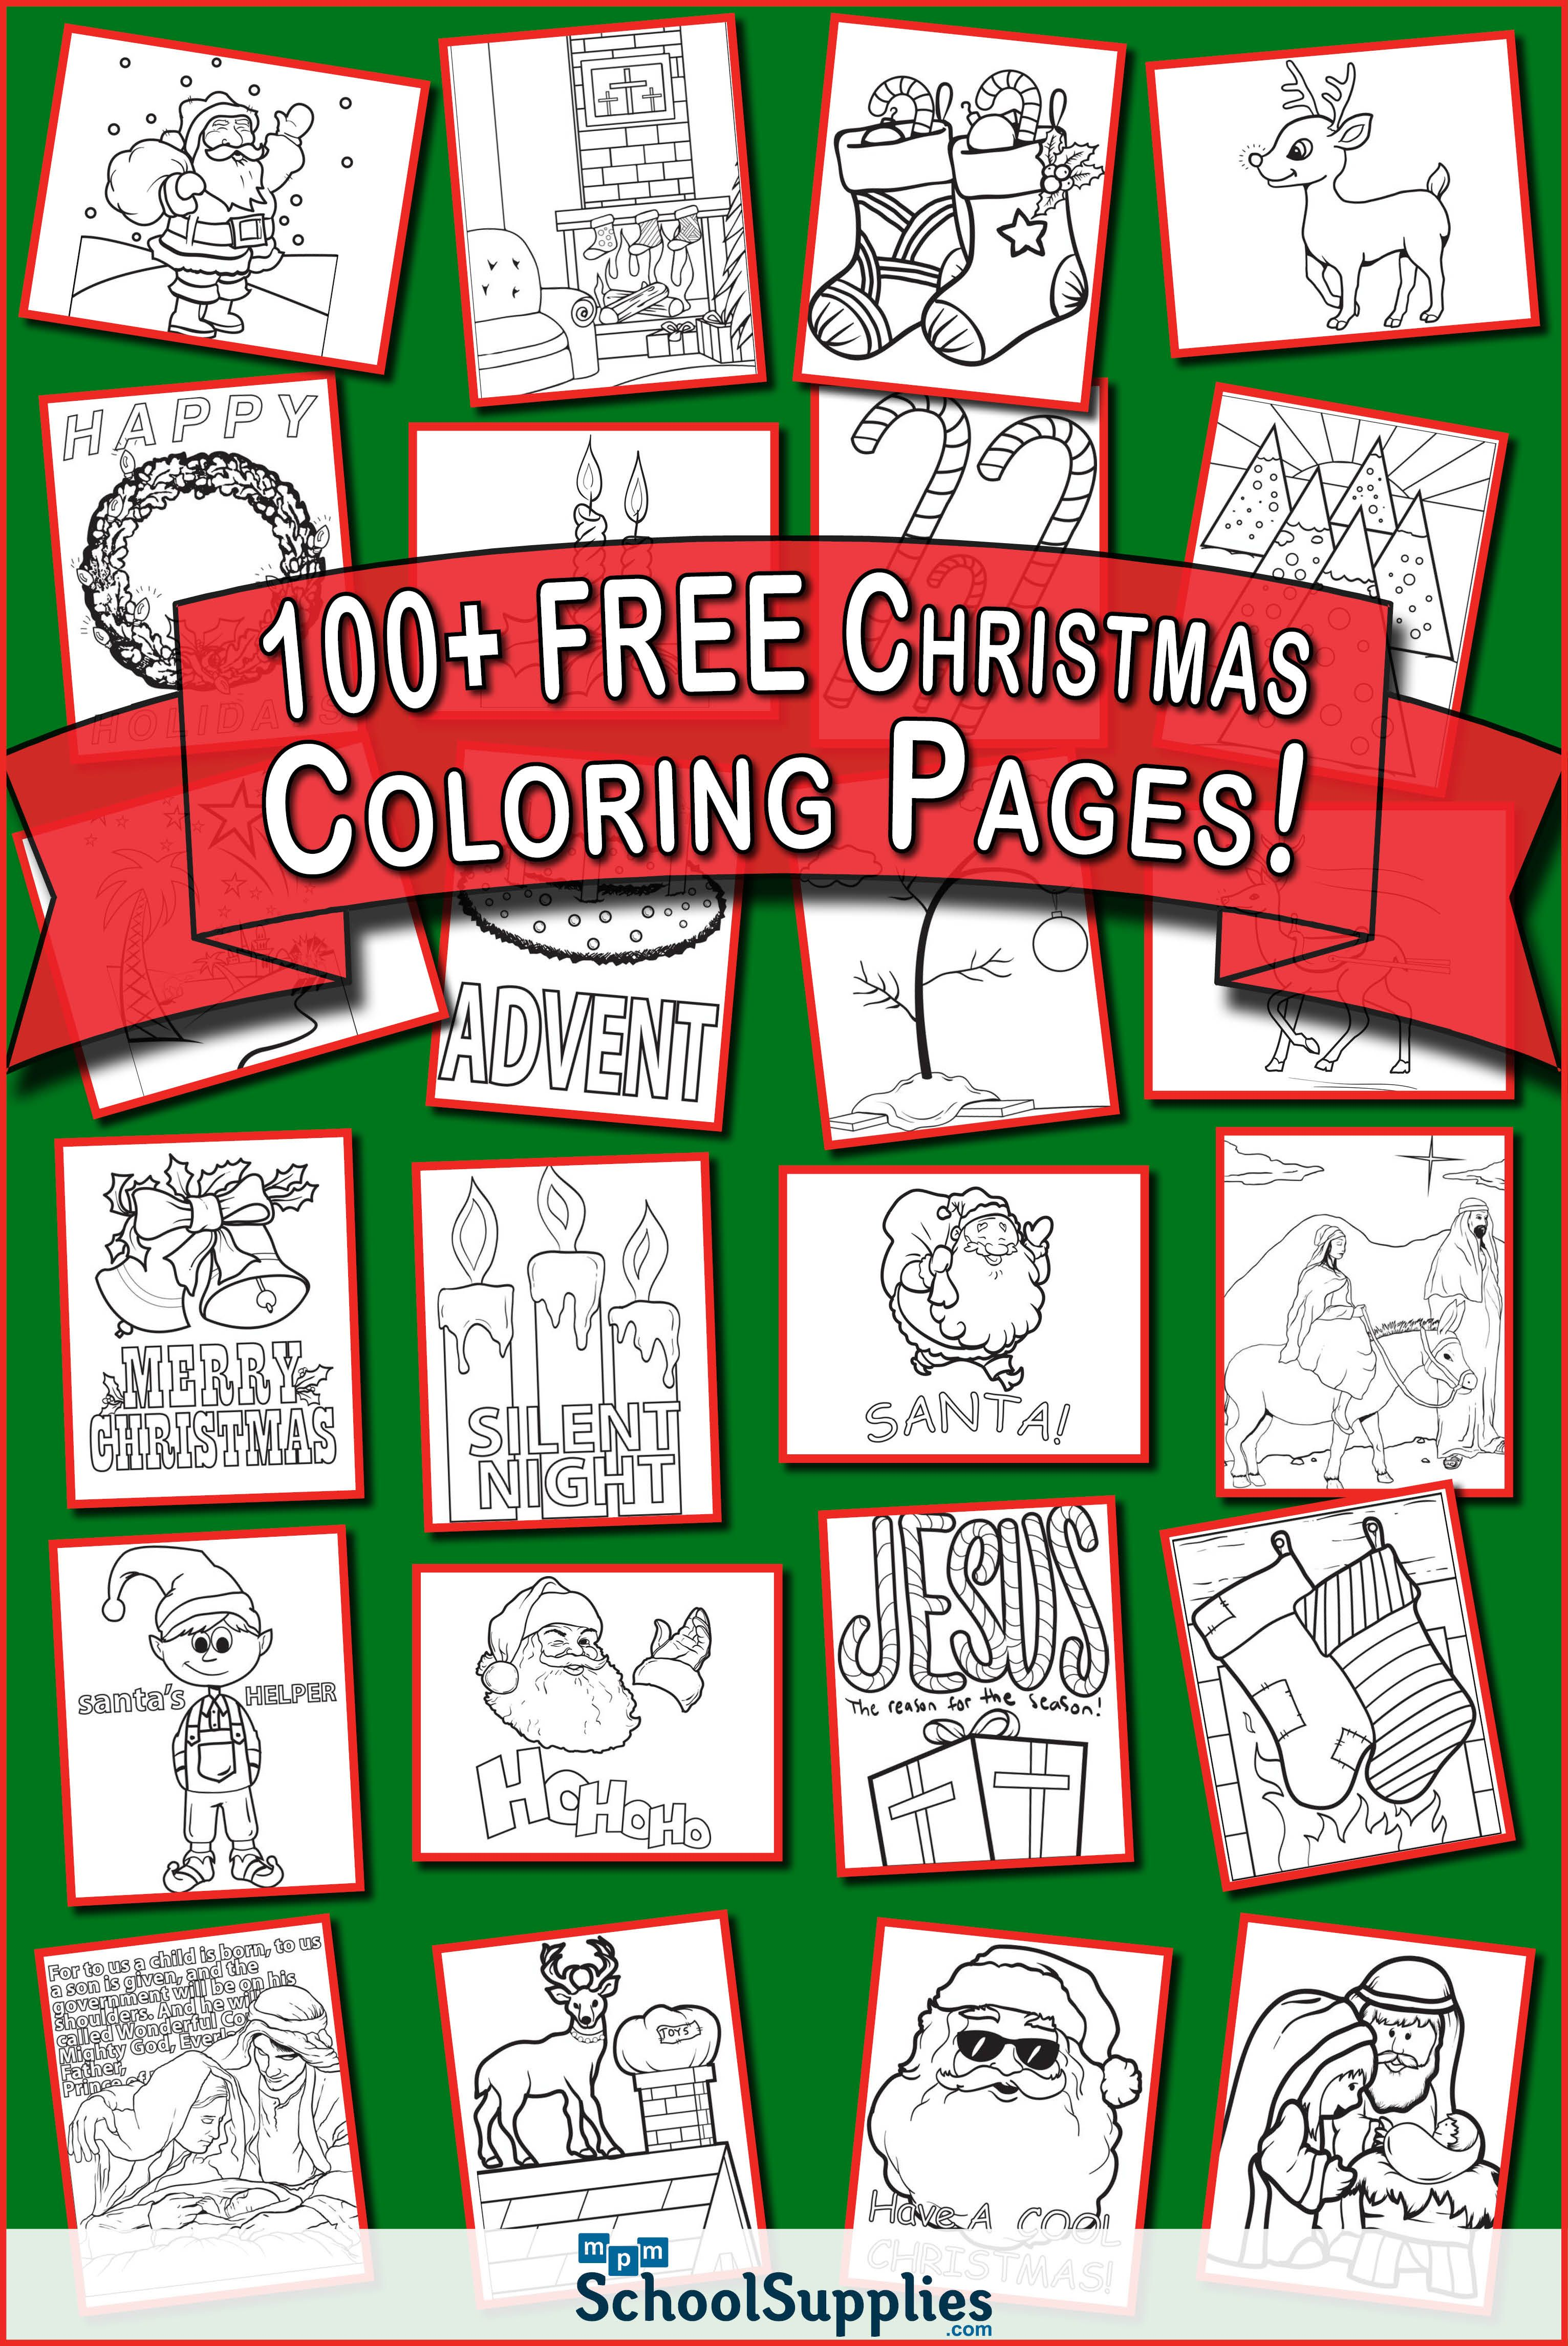 Over 100 FREE Christmas Coloring Pages! Our Christmas coloring ...